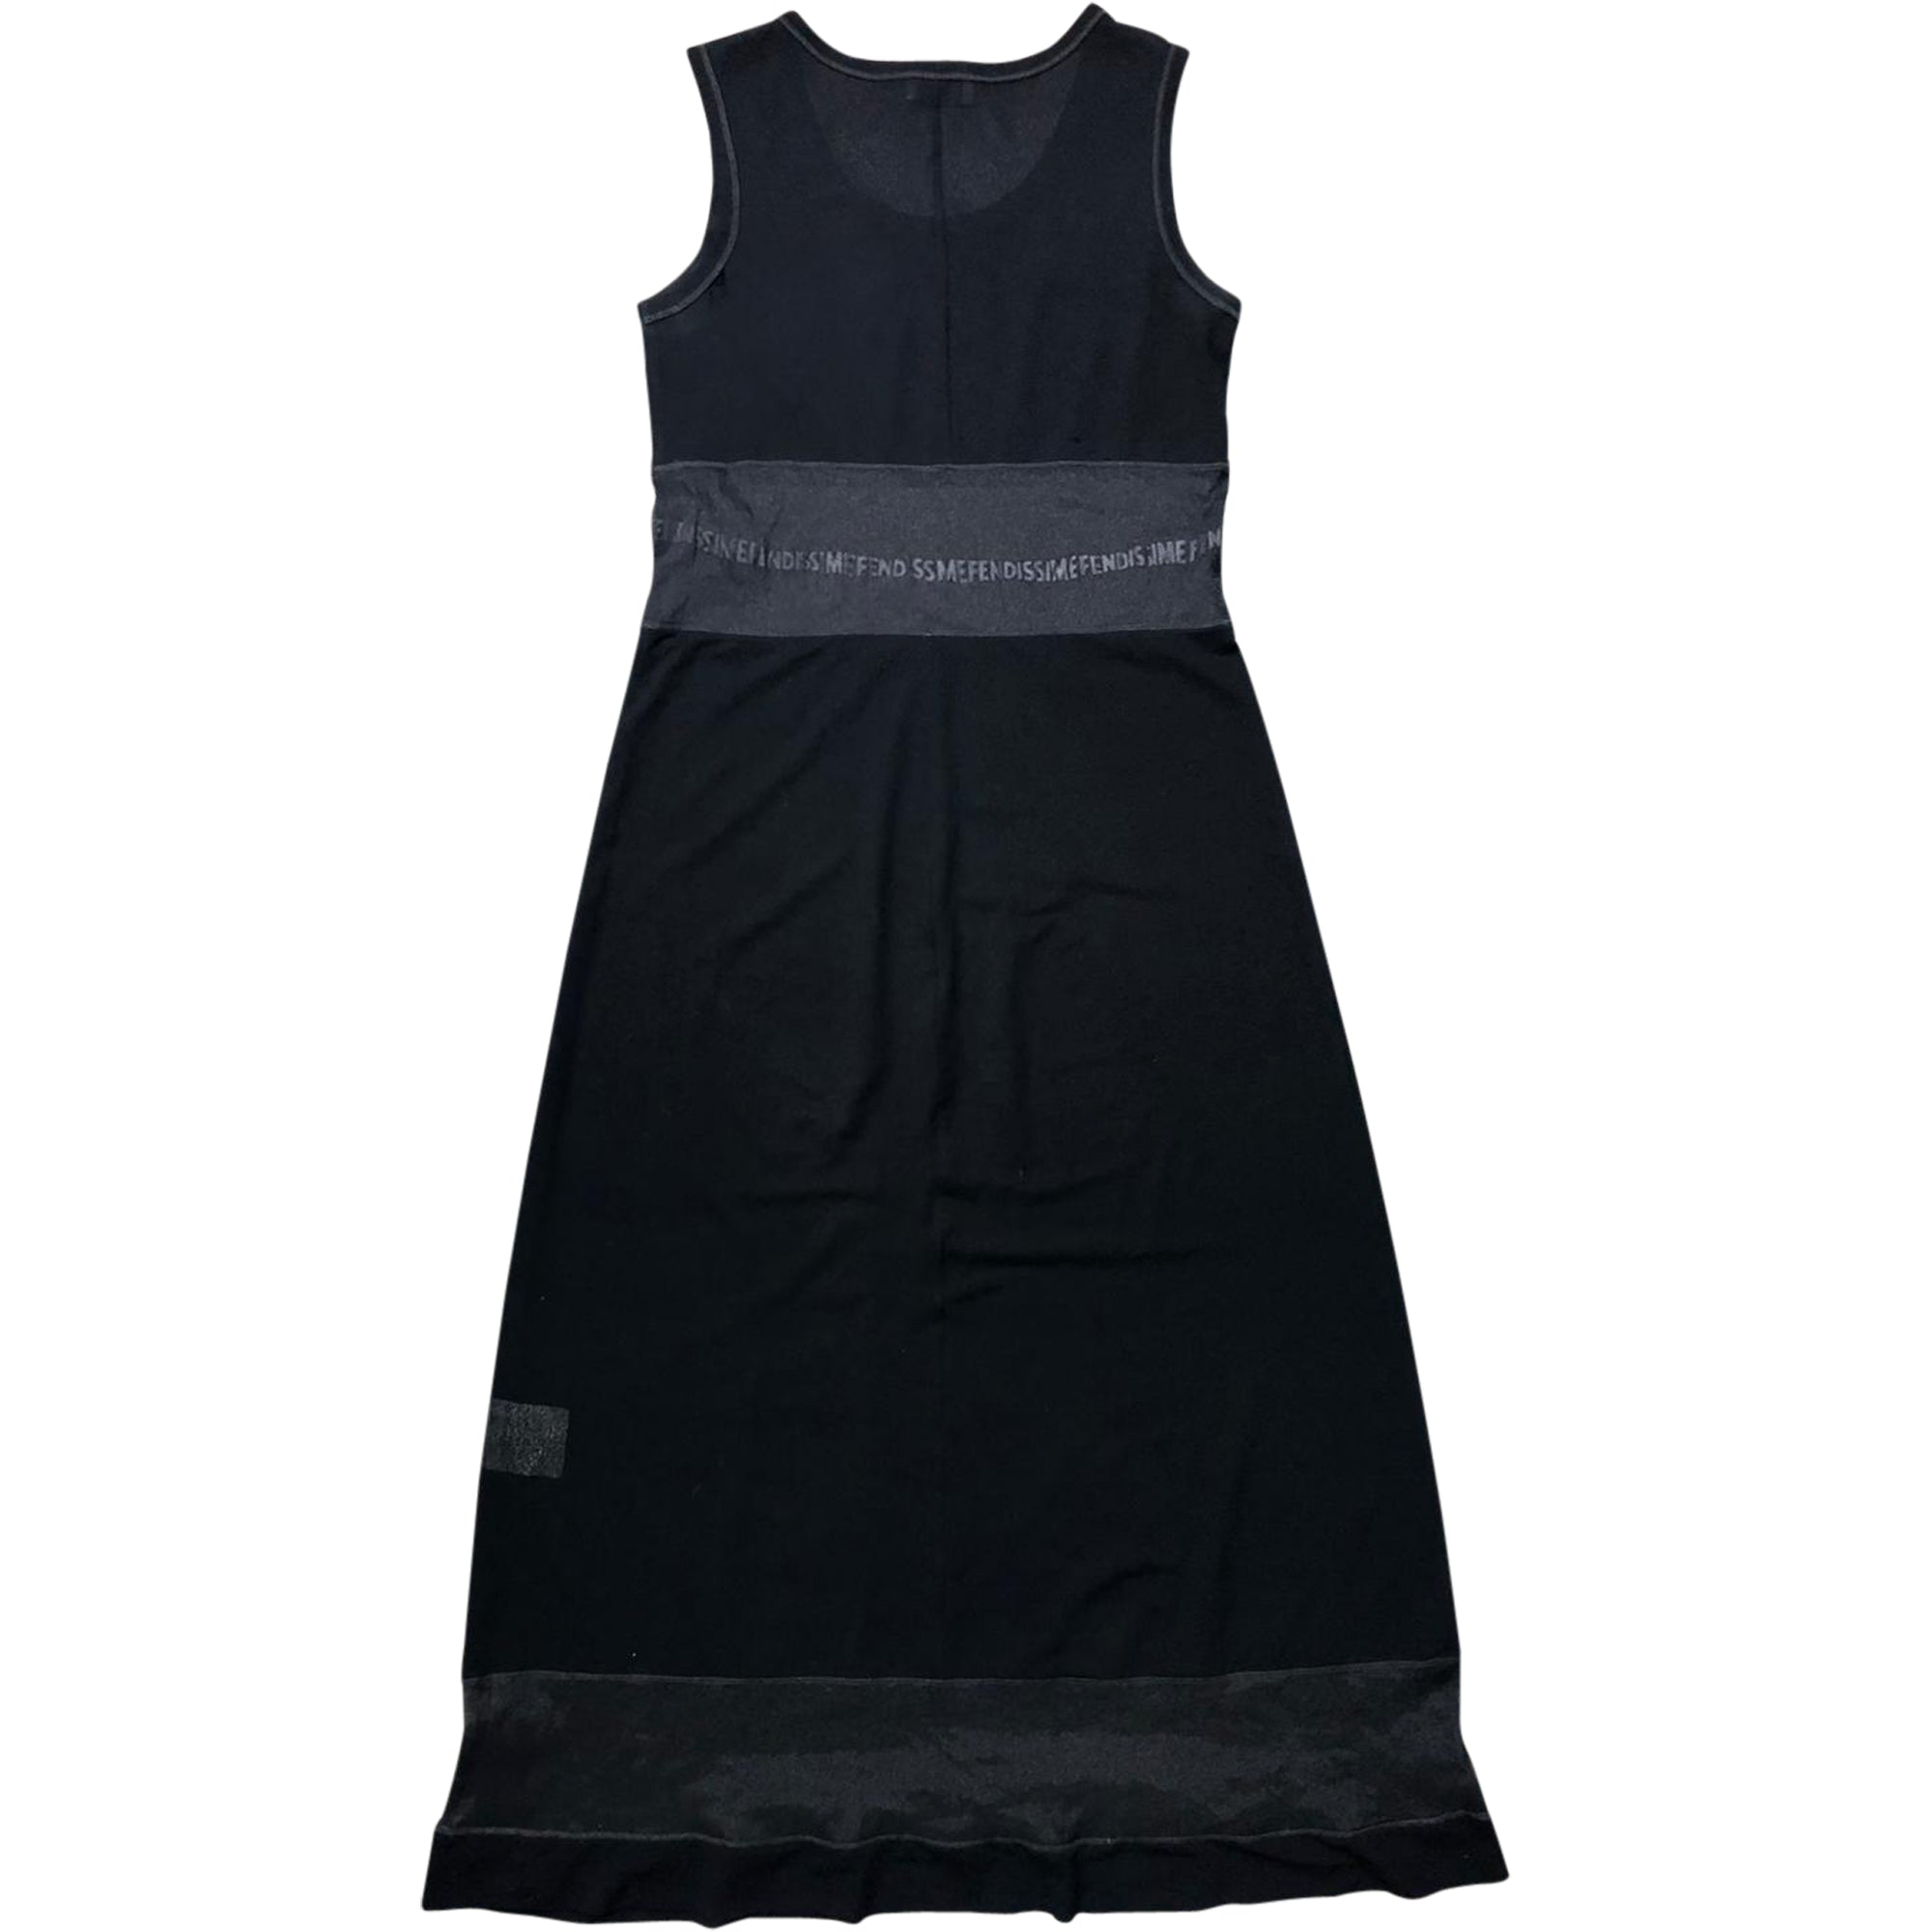 Fendi Fendissime Mesh Sheer Panel Dress (Black) UK 8-10